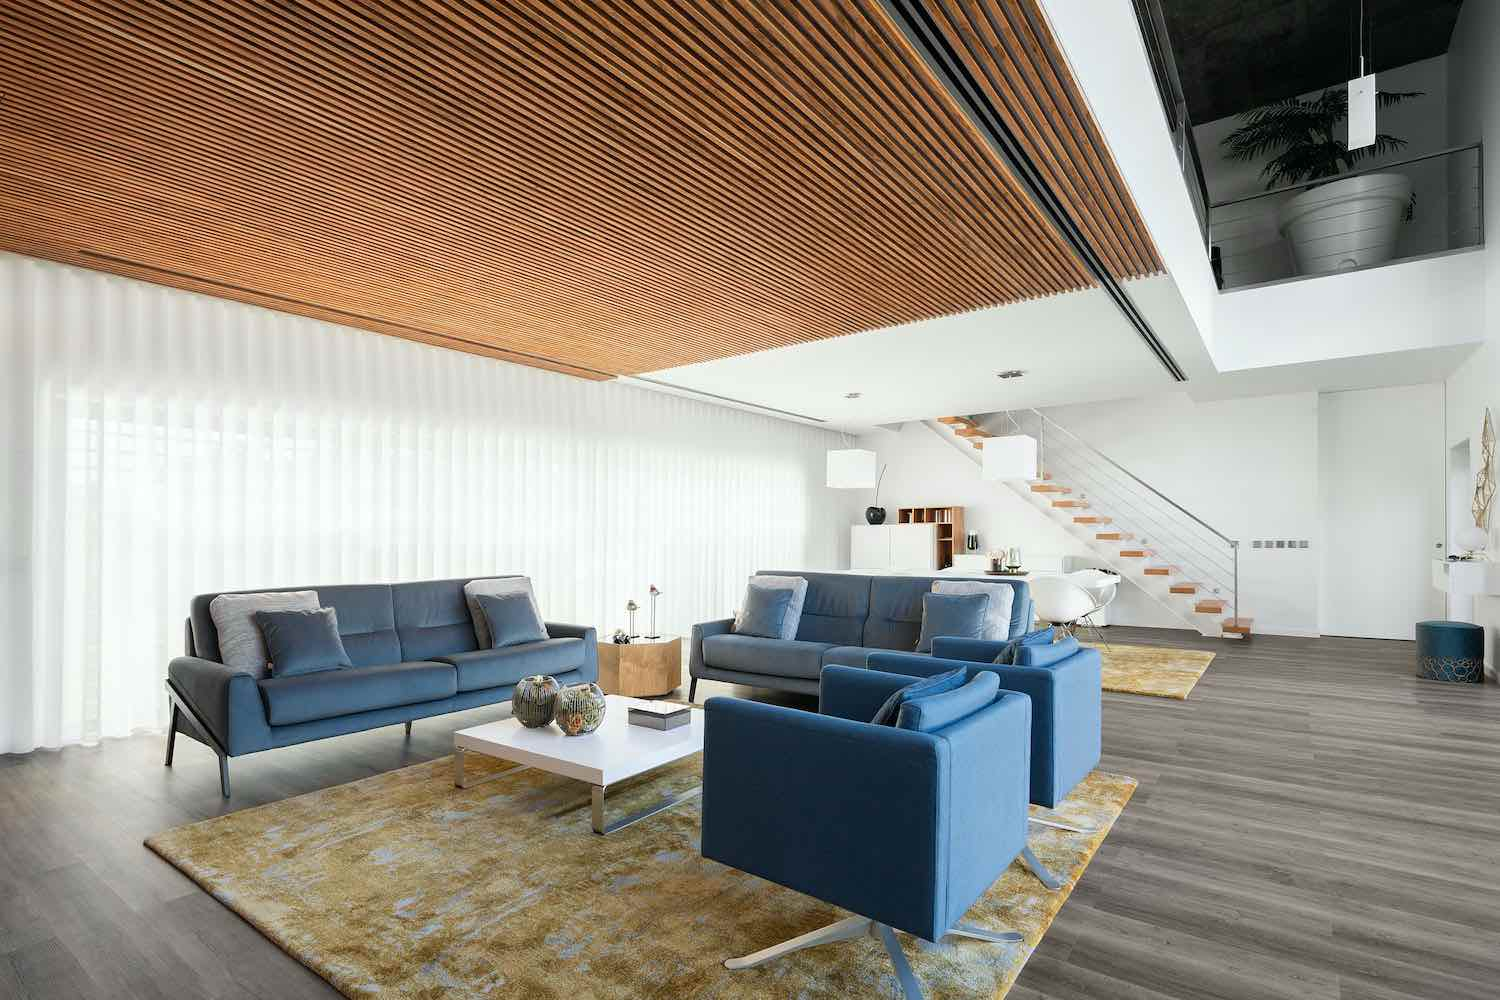 a living area with wooden ceiling and blue sofa